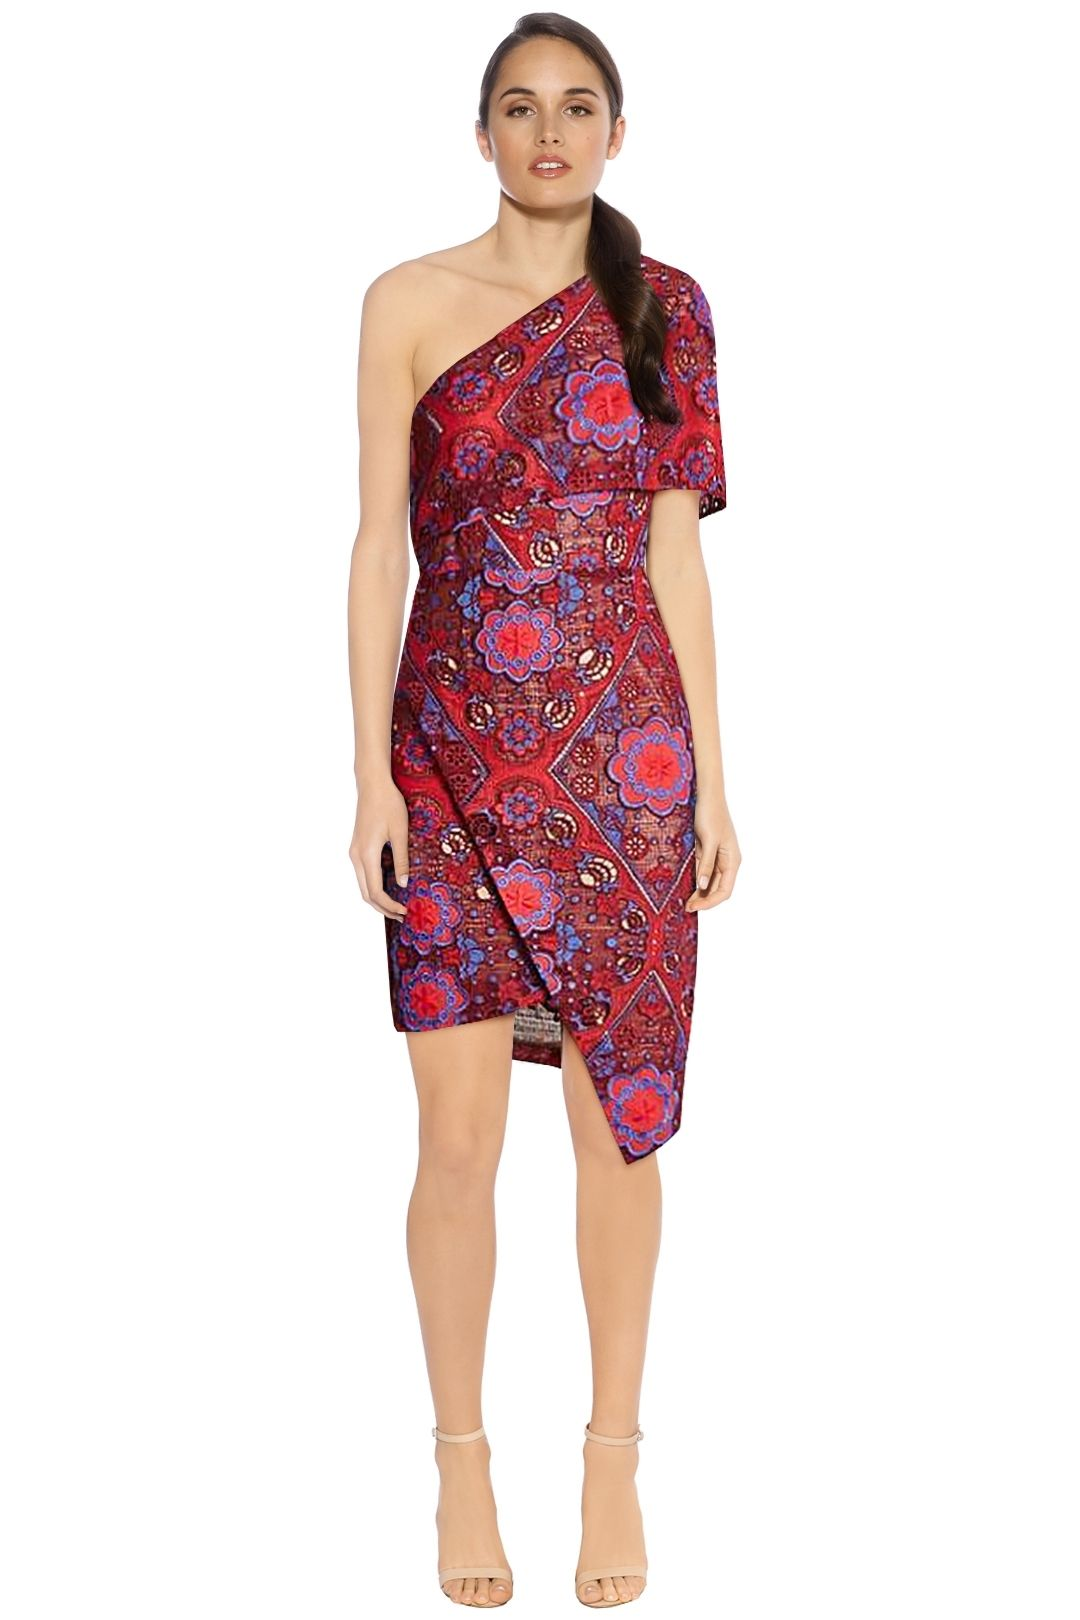 Elliatt - Cosmic Dress - Floral Red - Front